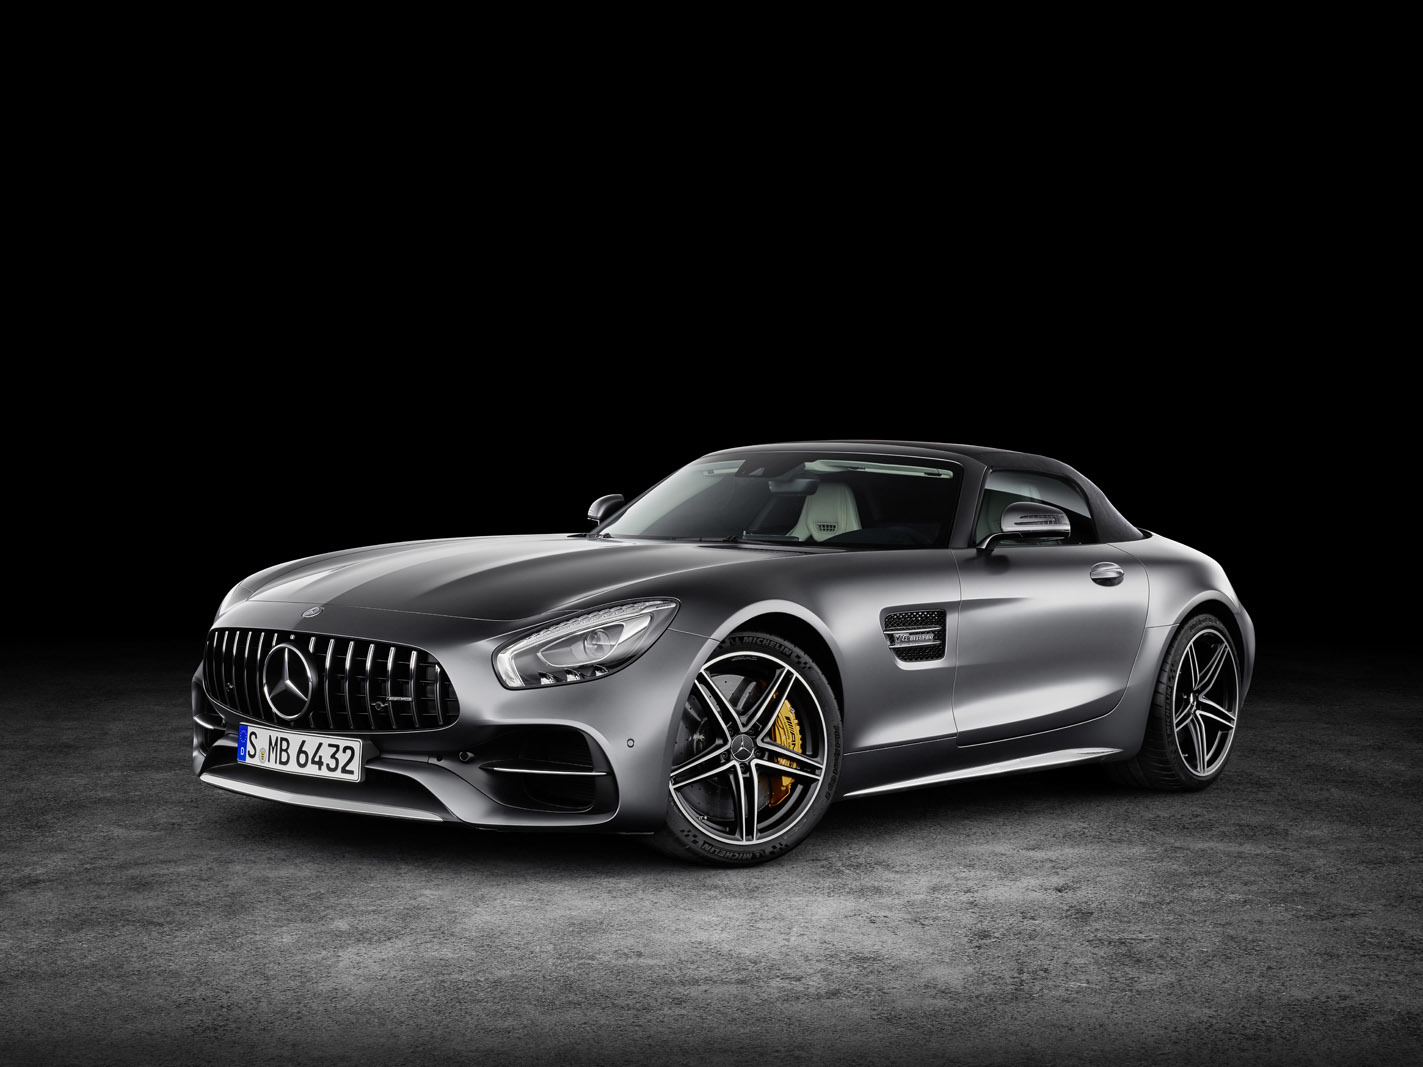 AMG GT C Roadster (R 190), 2016; Exterieur: designo selenitgrau magno; Interieur: Leder Nappa Exklusiv macchiatobeige; Kraftstoffverbrauch kombiniert: 11,4 l/100 km, CO2-Emissionen kombiniert: 259 g/km//AMG GT C Roadster (R 190), 2016; exterior: designo selenit grey magno; interior:Nappa leather exclusive macchiato beige; fuel consumption, combined: 11.4 l/100 km; combined CO2 emissions: 259 g/km